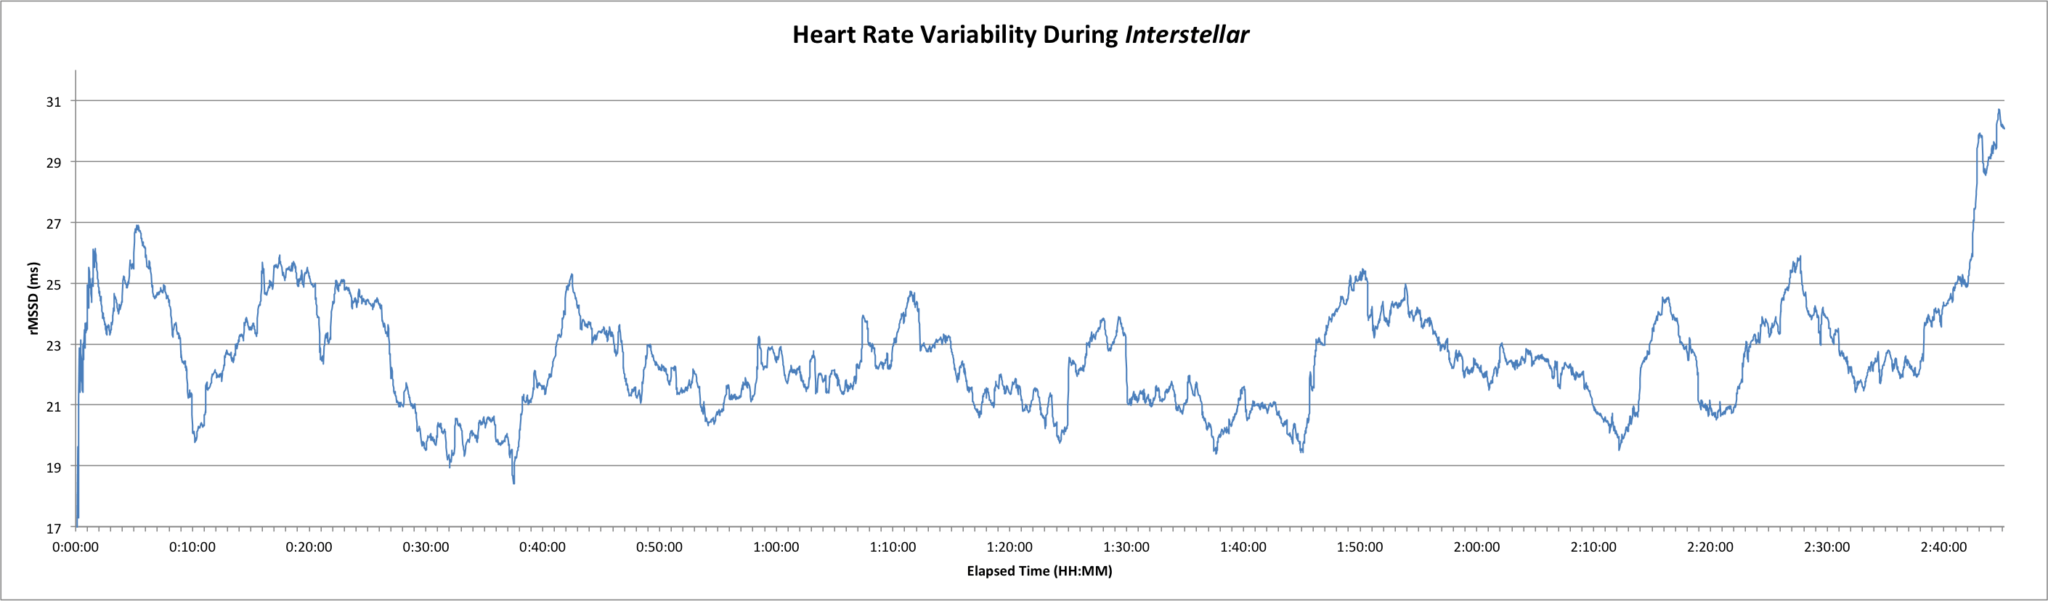 Heart rate variability (HRV) during Interstellar